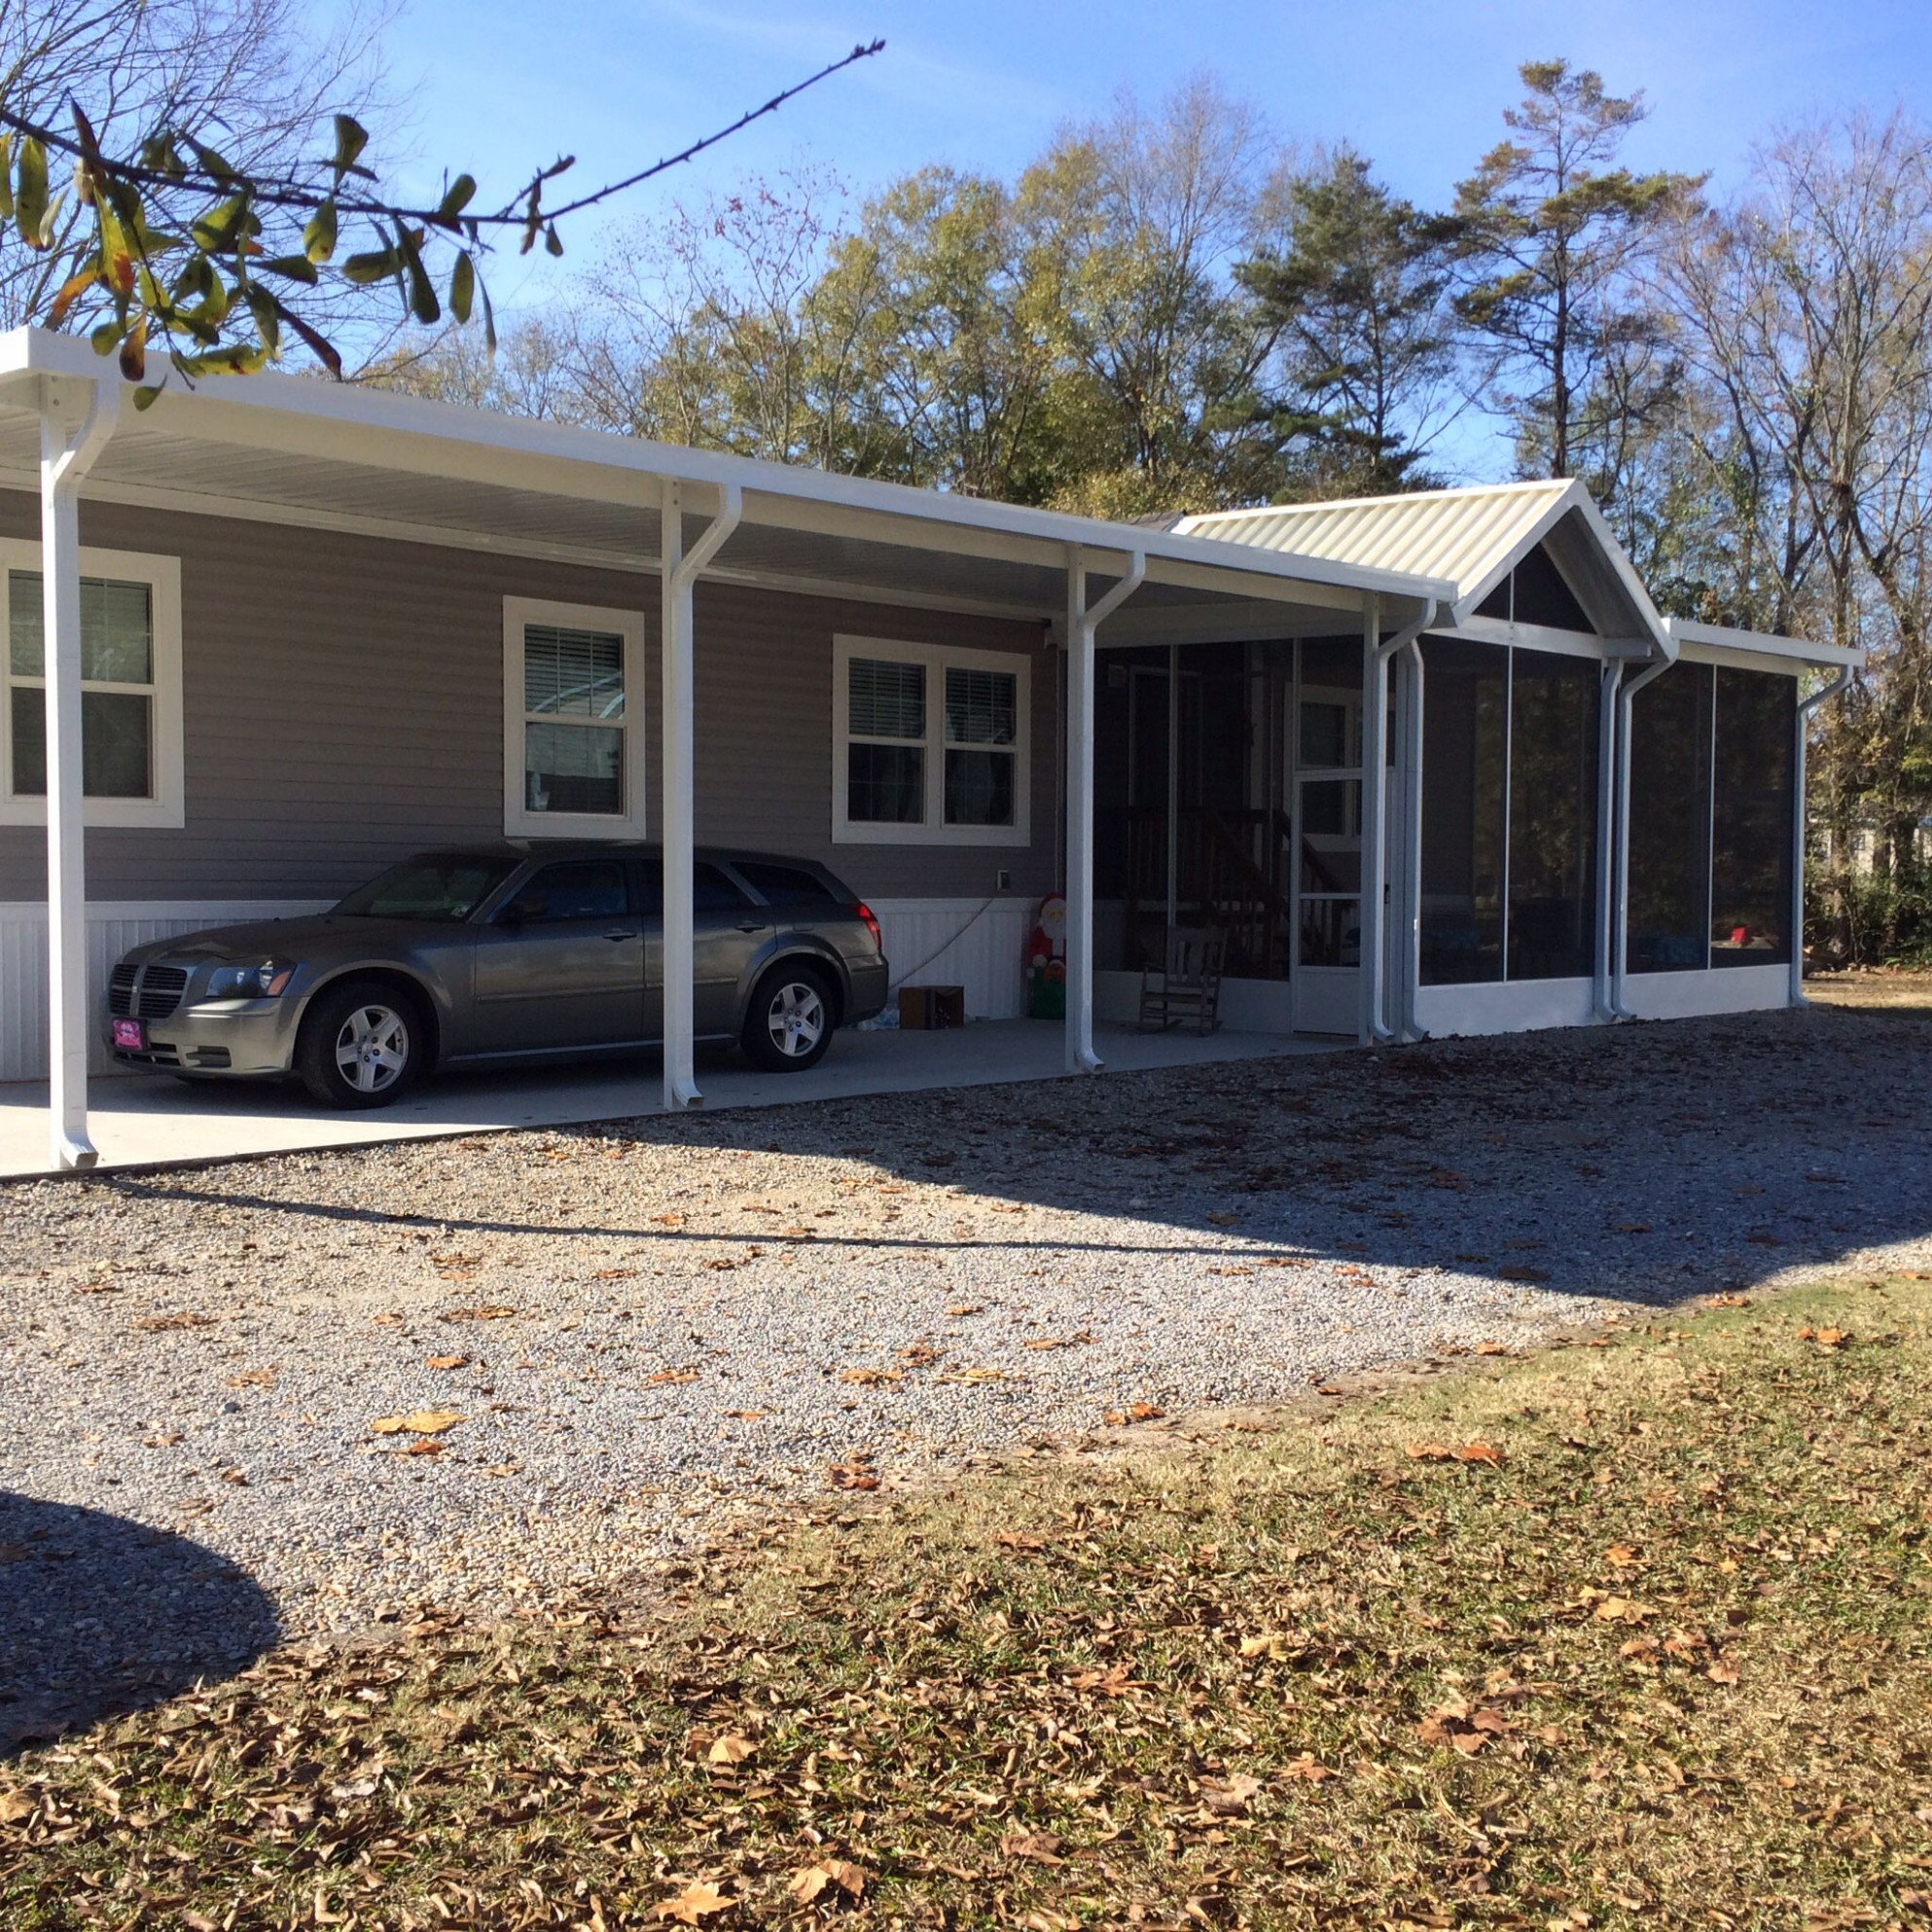 Screened Porch / Room With Carport Attached   Screen Rooms ..